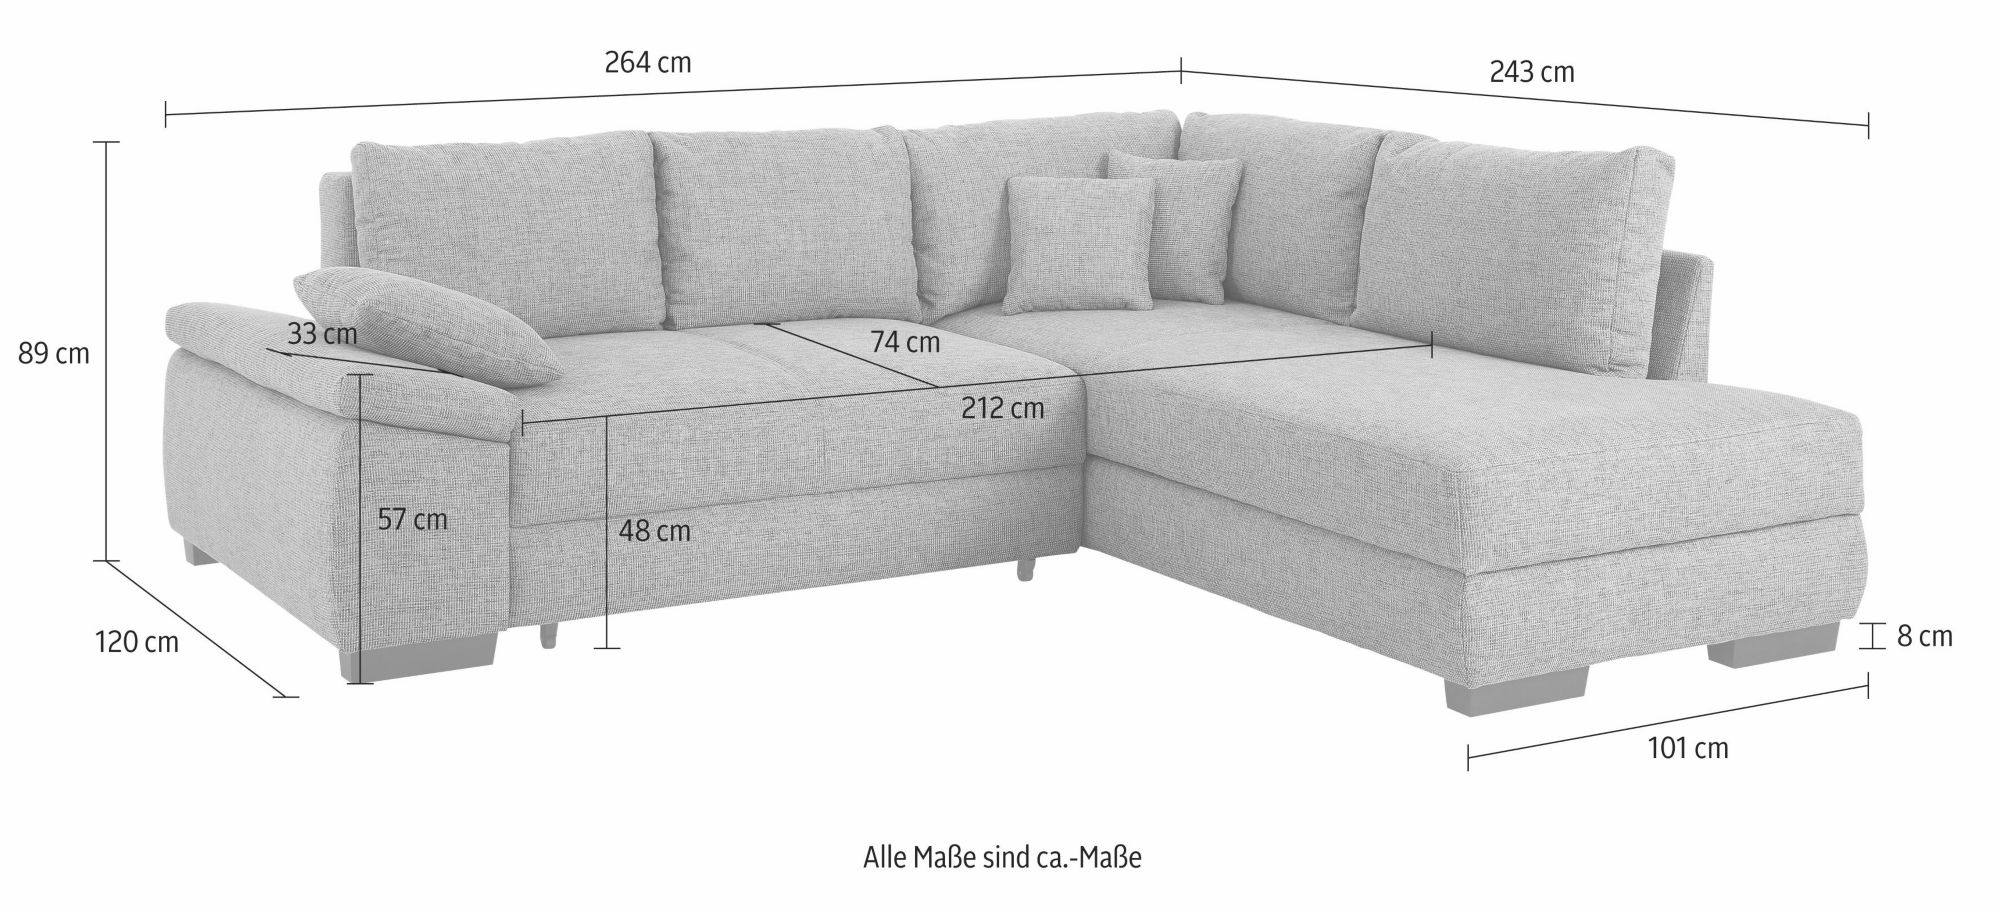 home affaire ecksofa trinidad boxspring wahlweise mit bettfunktion f r dauerschl fer geeigne. Black Bedroom Furniture Sets. Home Design Ideas